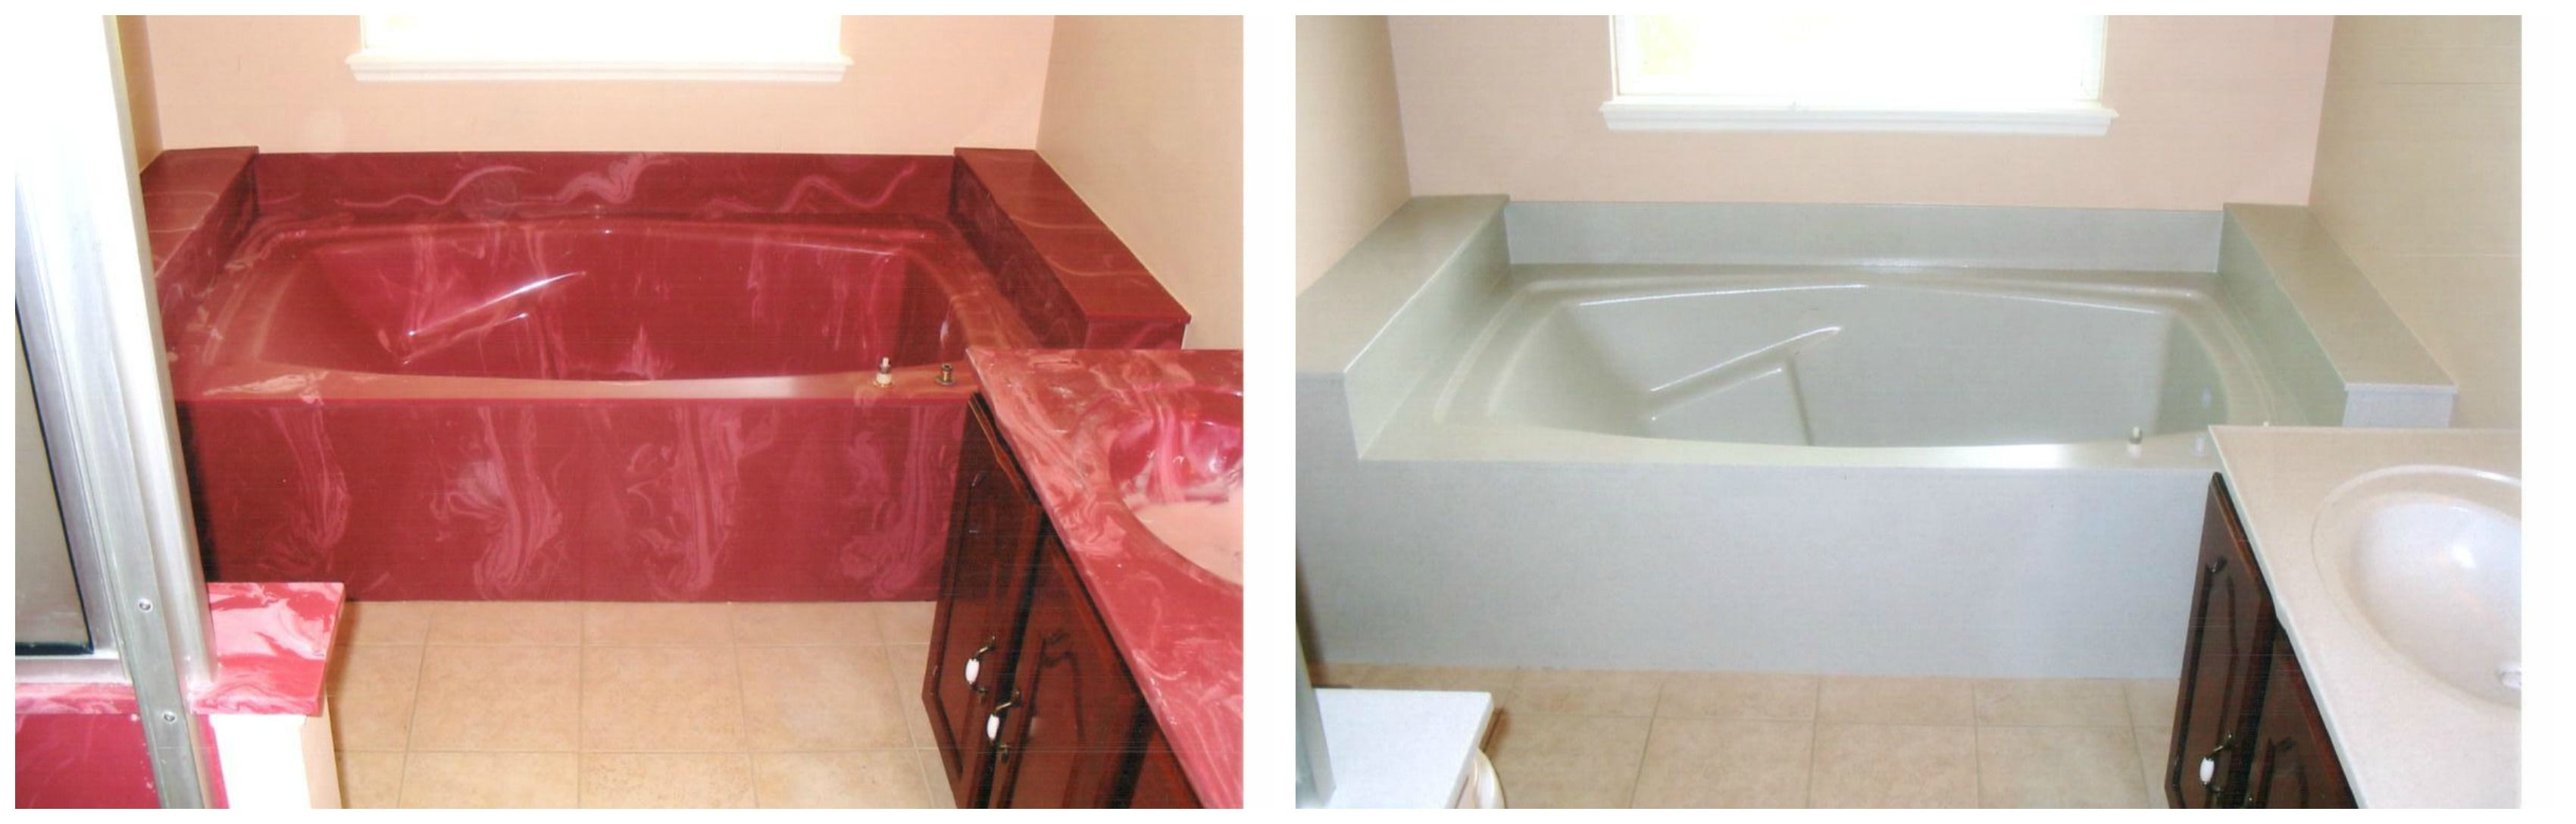 Ugly Cultured Marble Tub Before On Left Beautifully